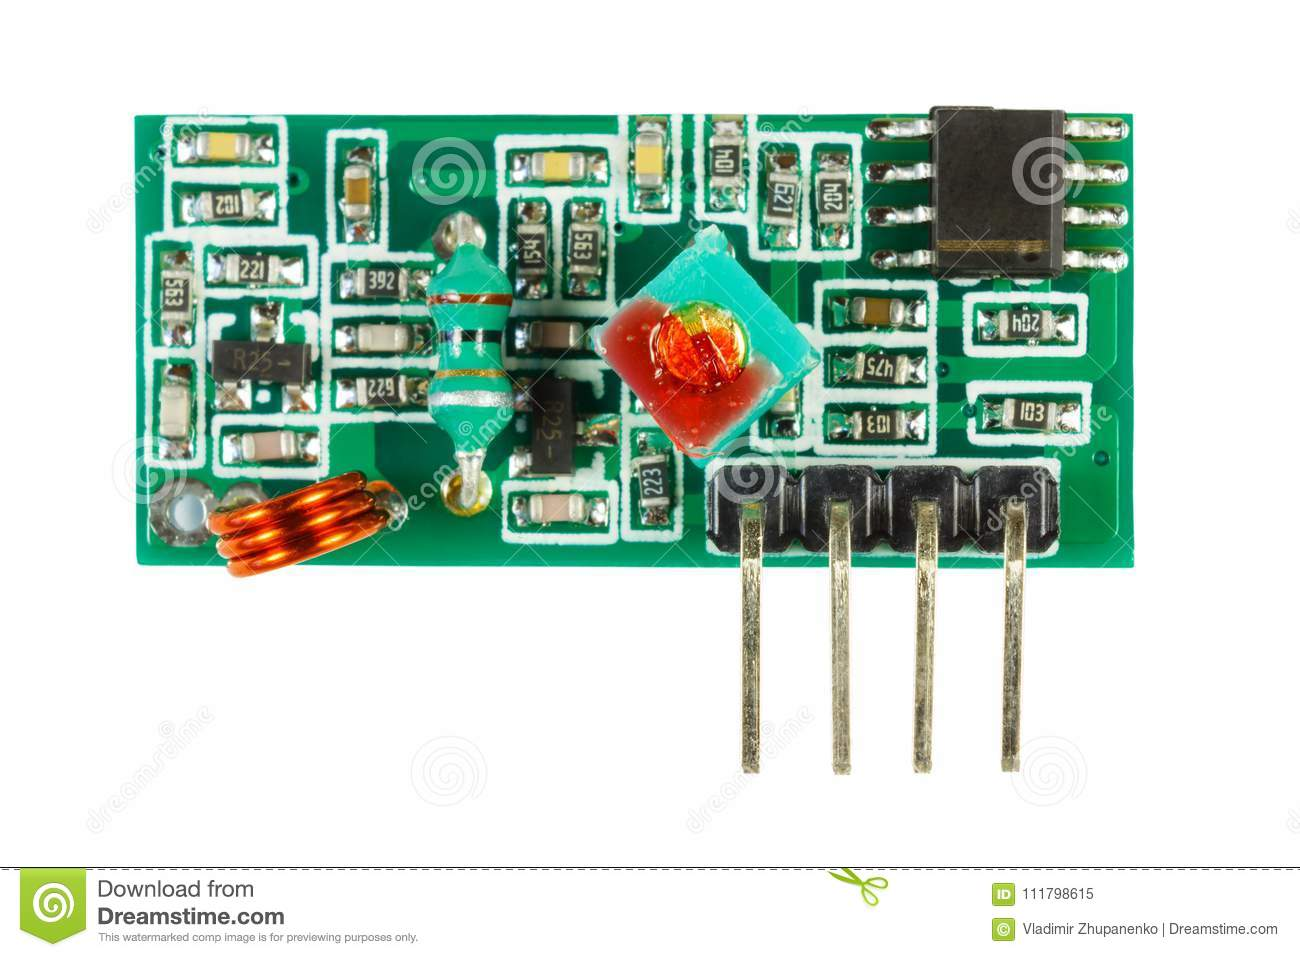 Receiver Of Digital Signal Printed Circuit Board With The Set Completely Assembled Electronic Components Isolated On White Background